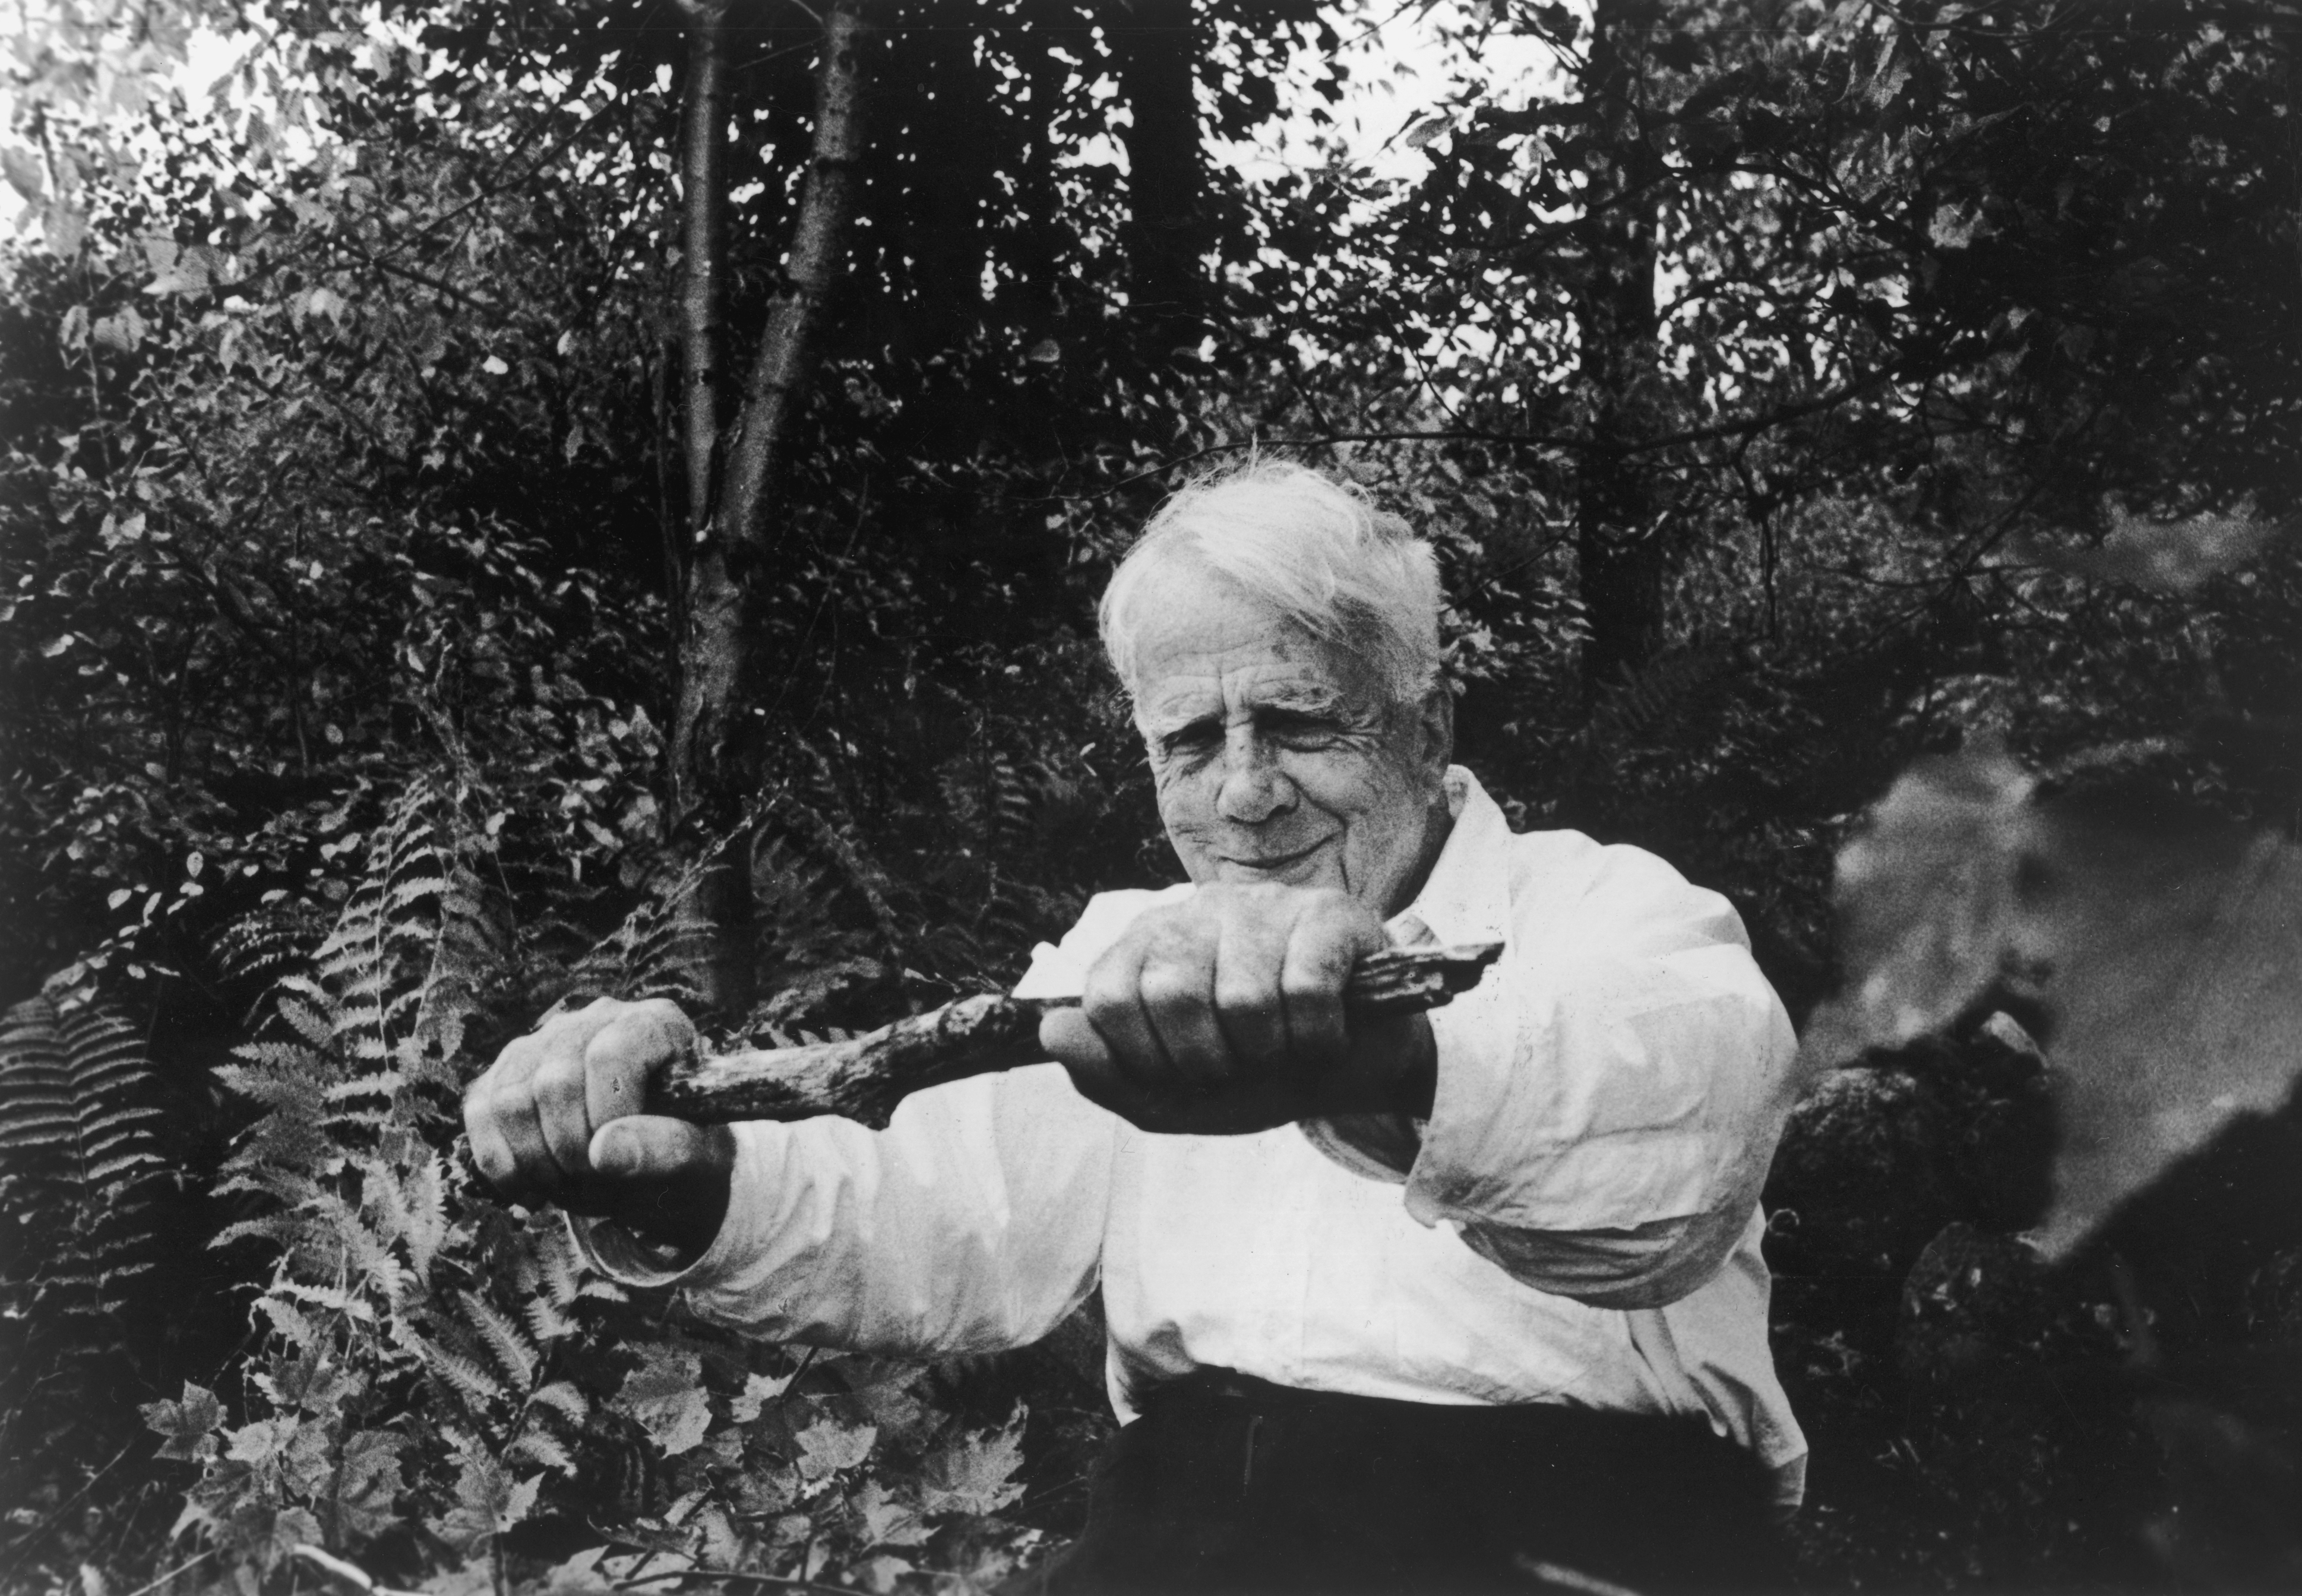 American poet and 1924 Pulitzer Prize winner Robert Lee Frost (1874-1963) holds a stick in both hands at arms length in a forest, circa 1960.